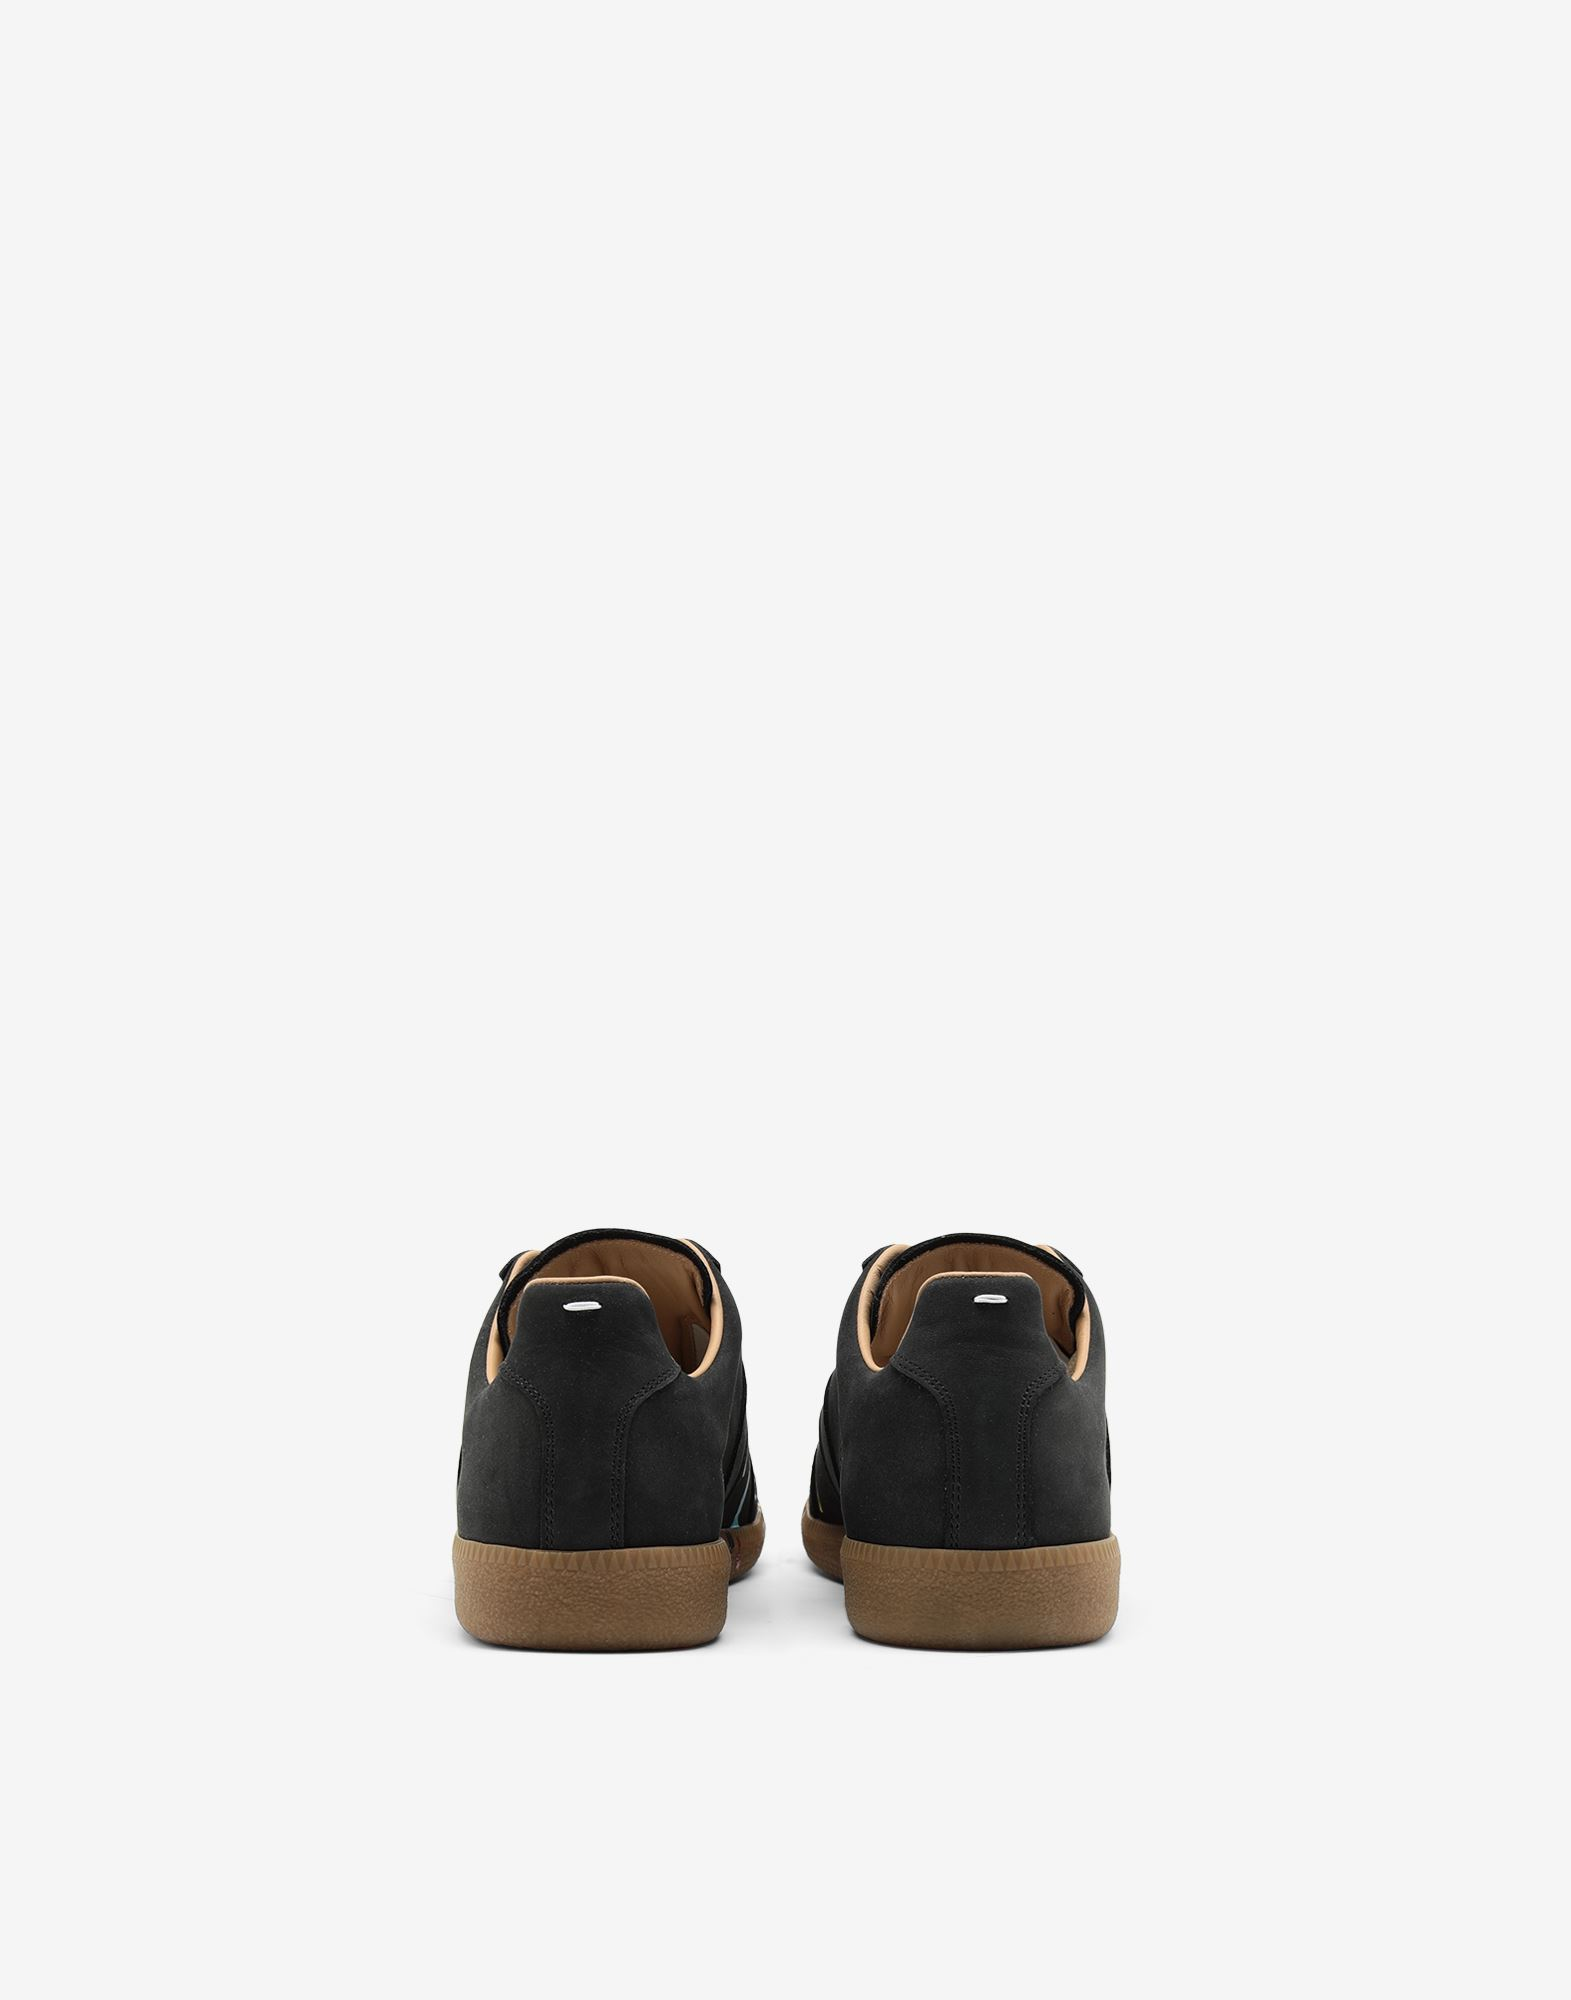 MAISON MARGIELA Suede paint drop 'Replica' sneakers Sneakers Man d